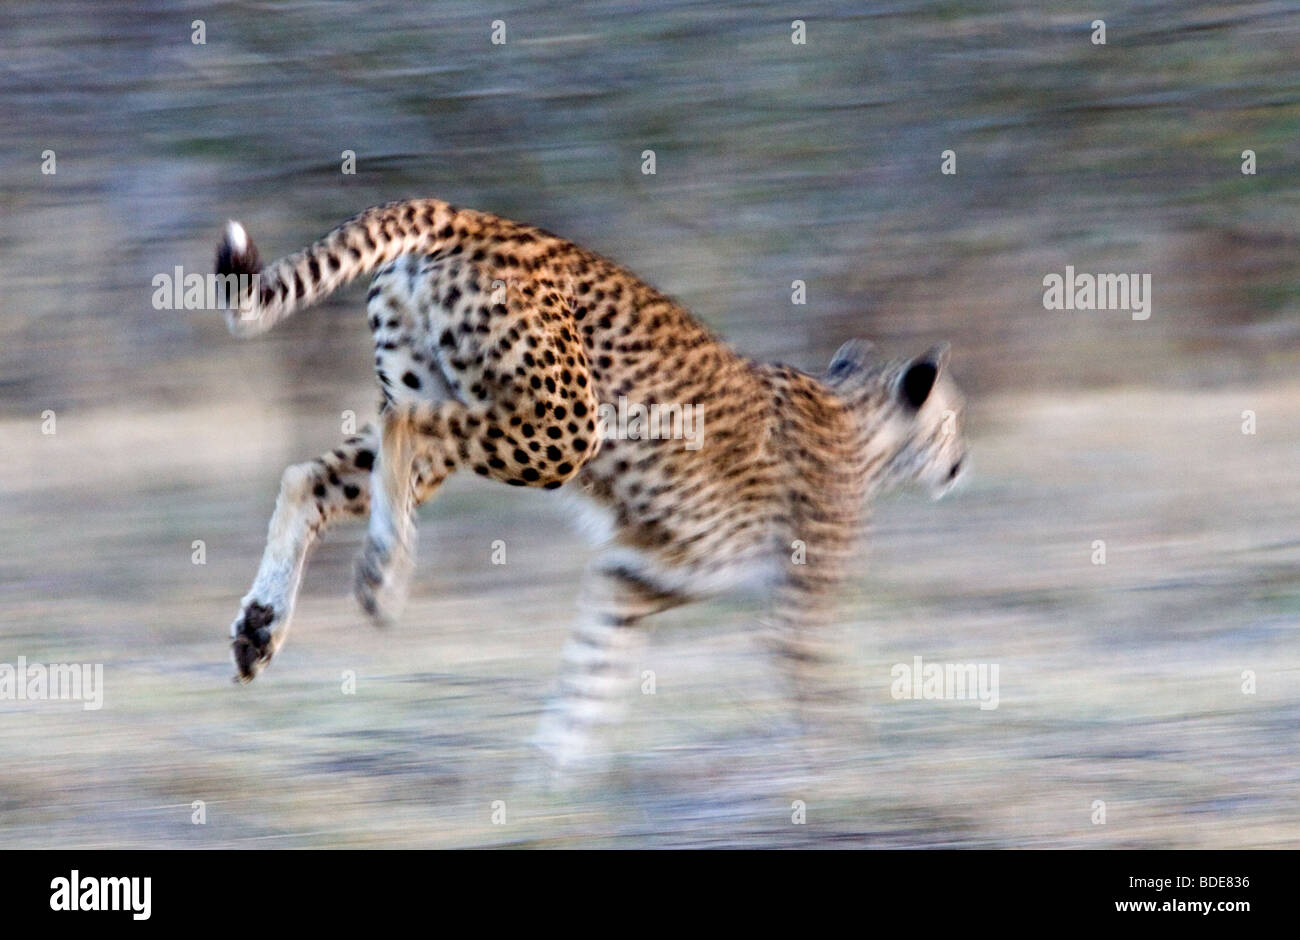 Adult female Cheetah running, Kruger National Park, South Africa. Stock Photo